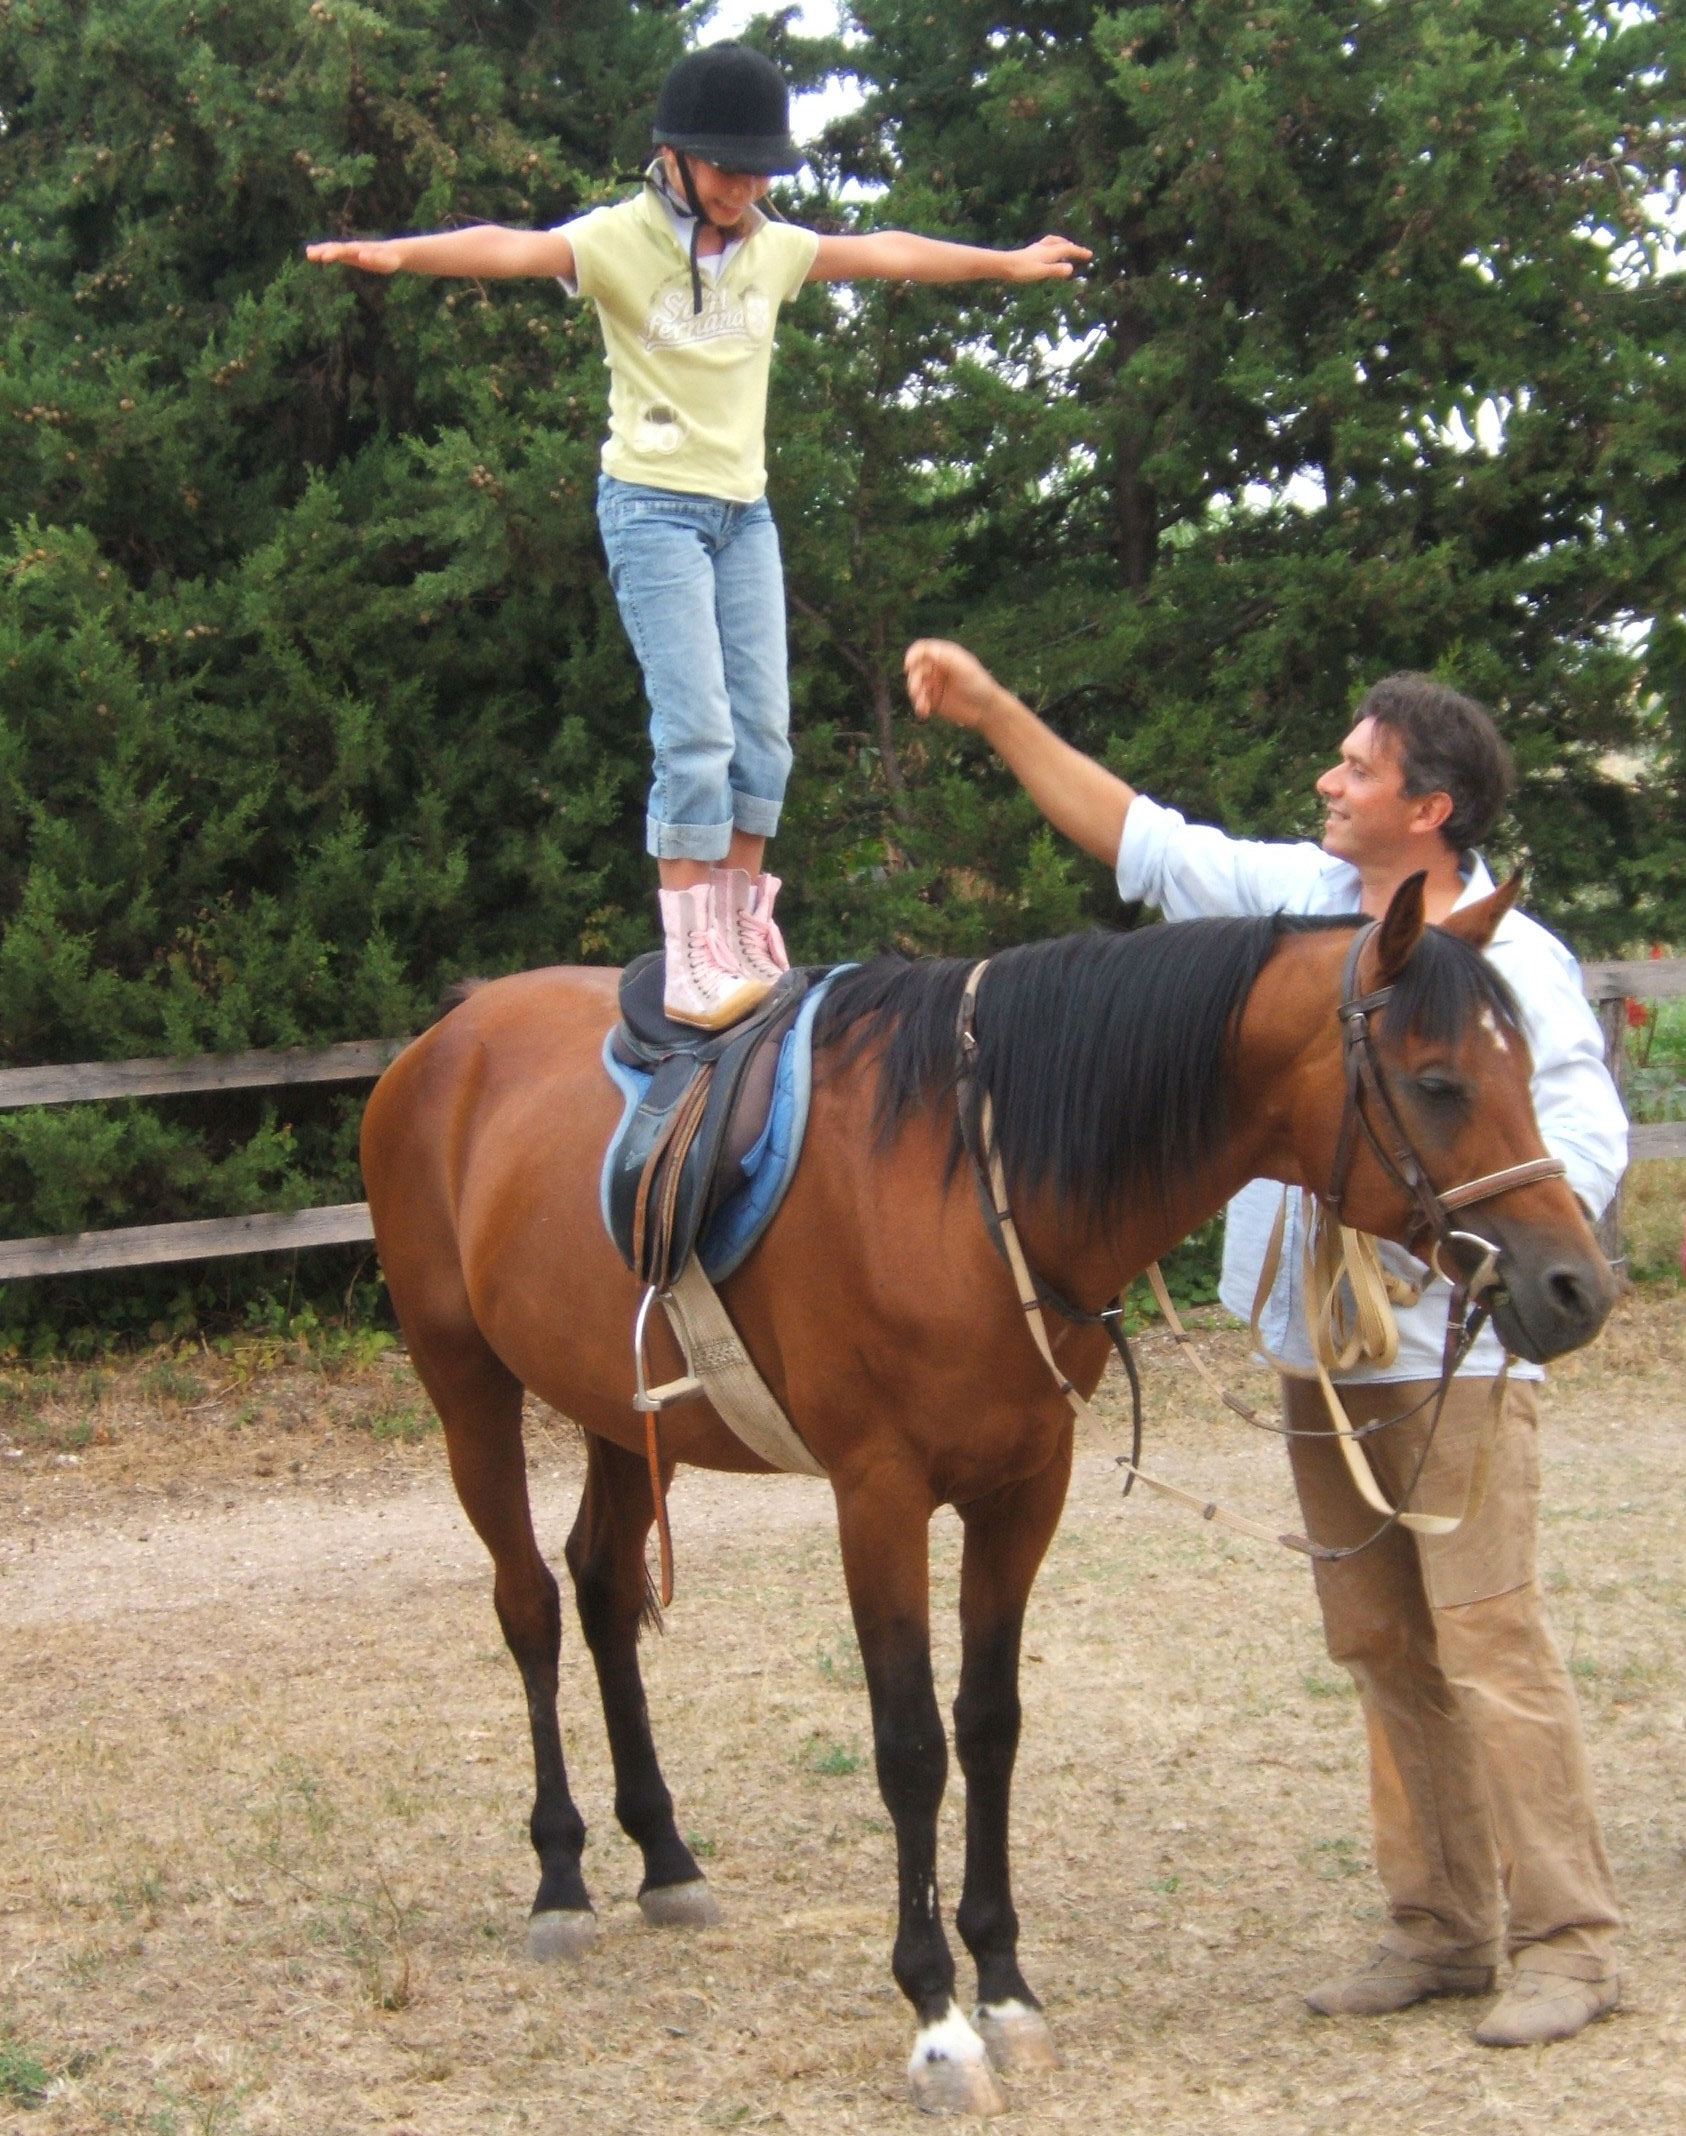 Horse back riding in the Sibillini mountains, lessons just for kids in Marche Italy